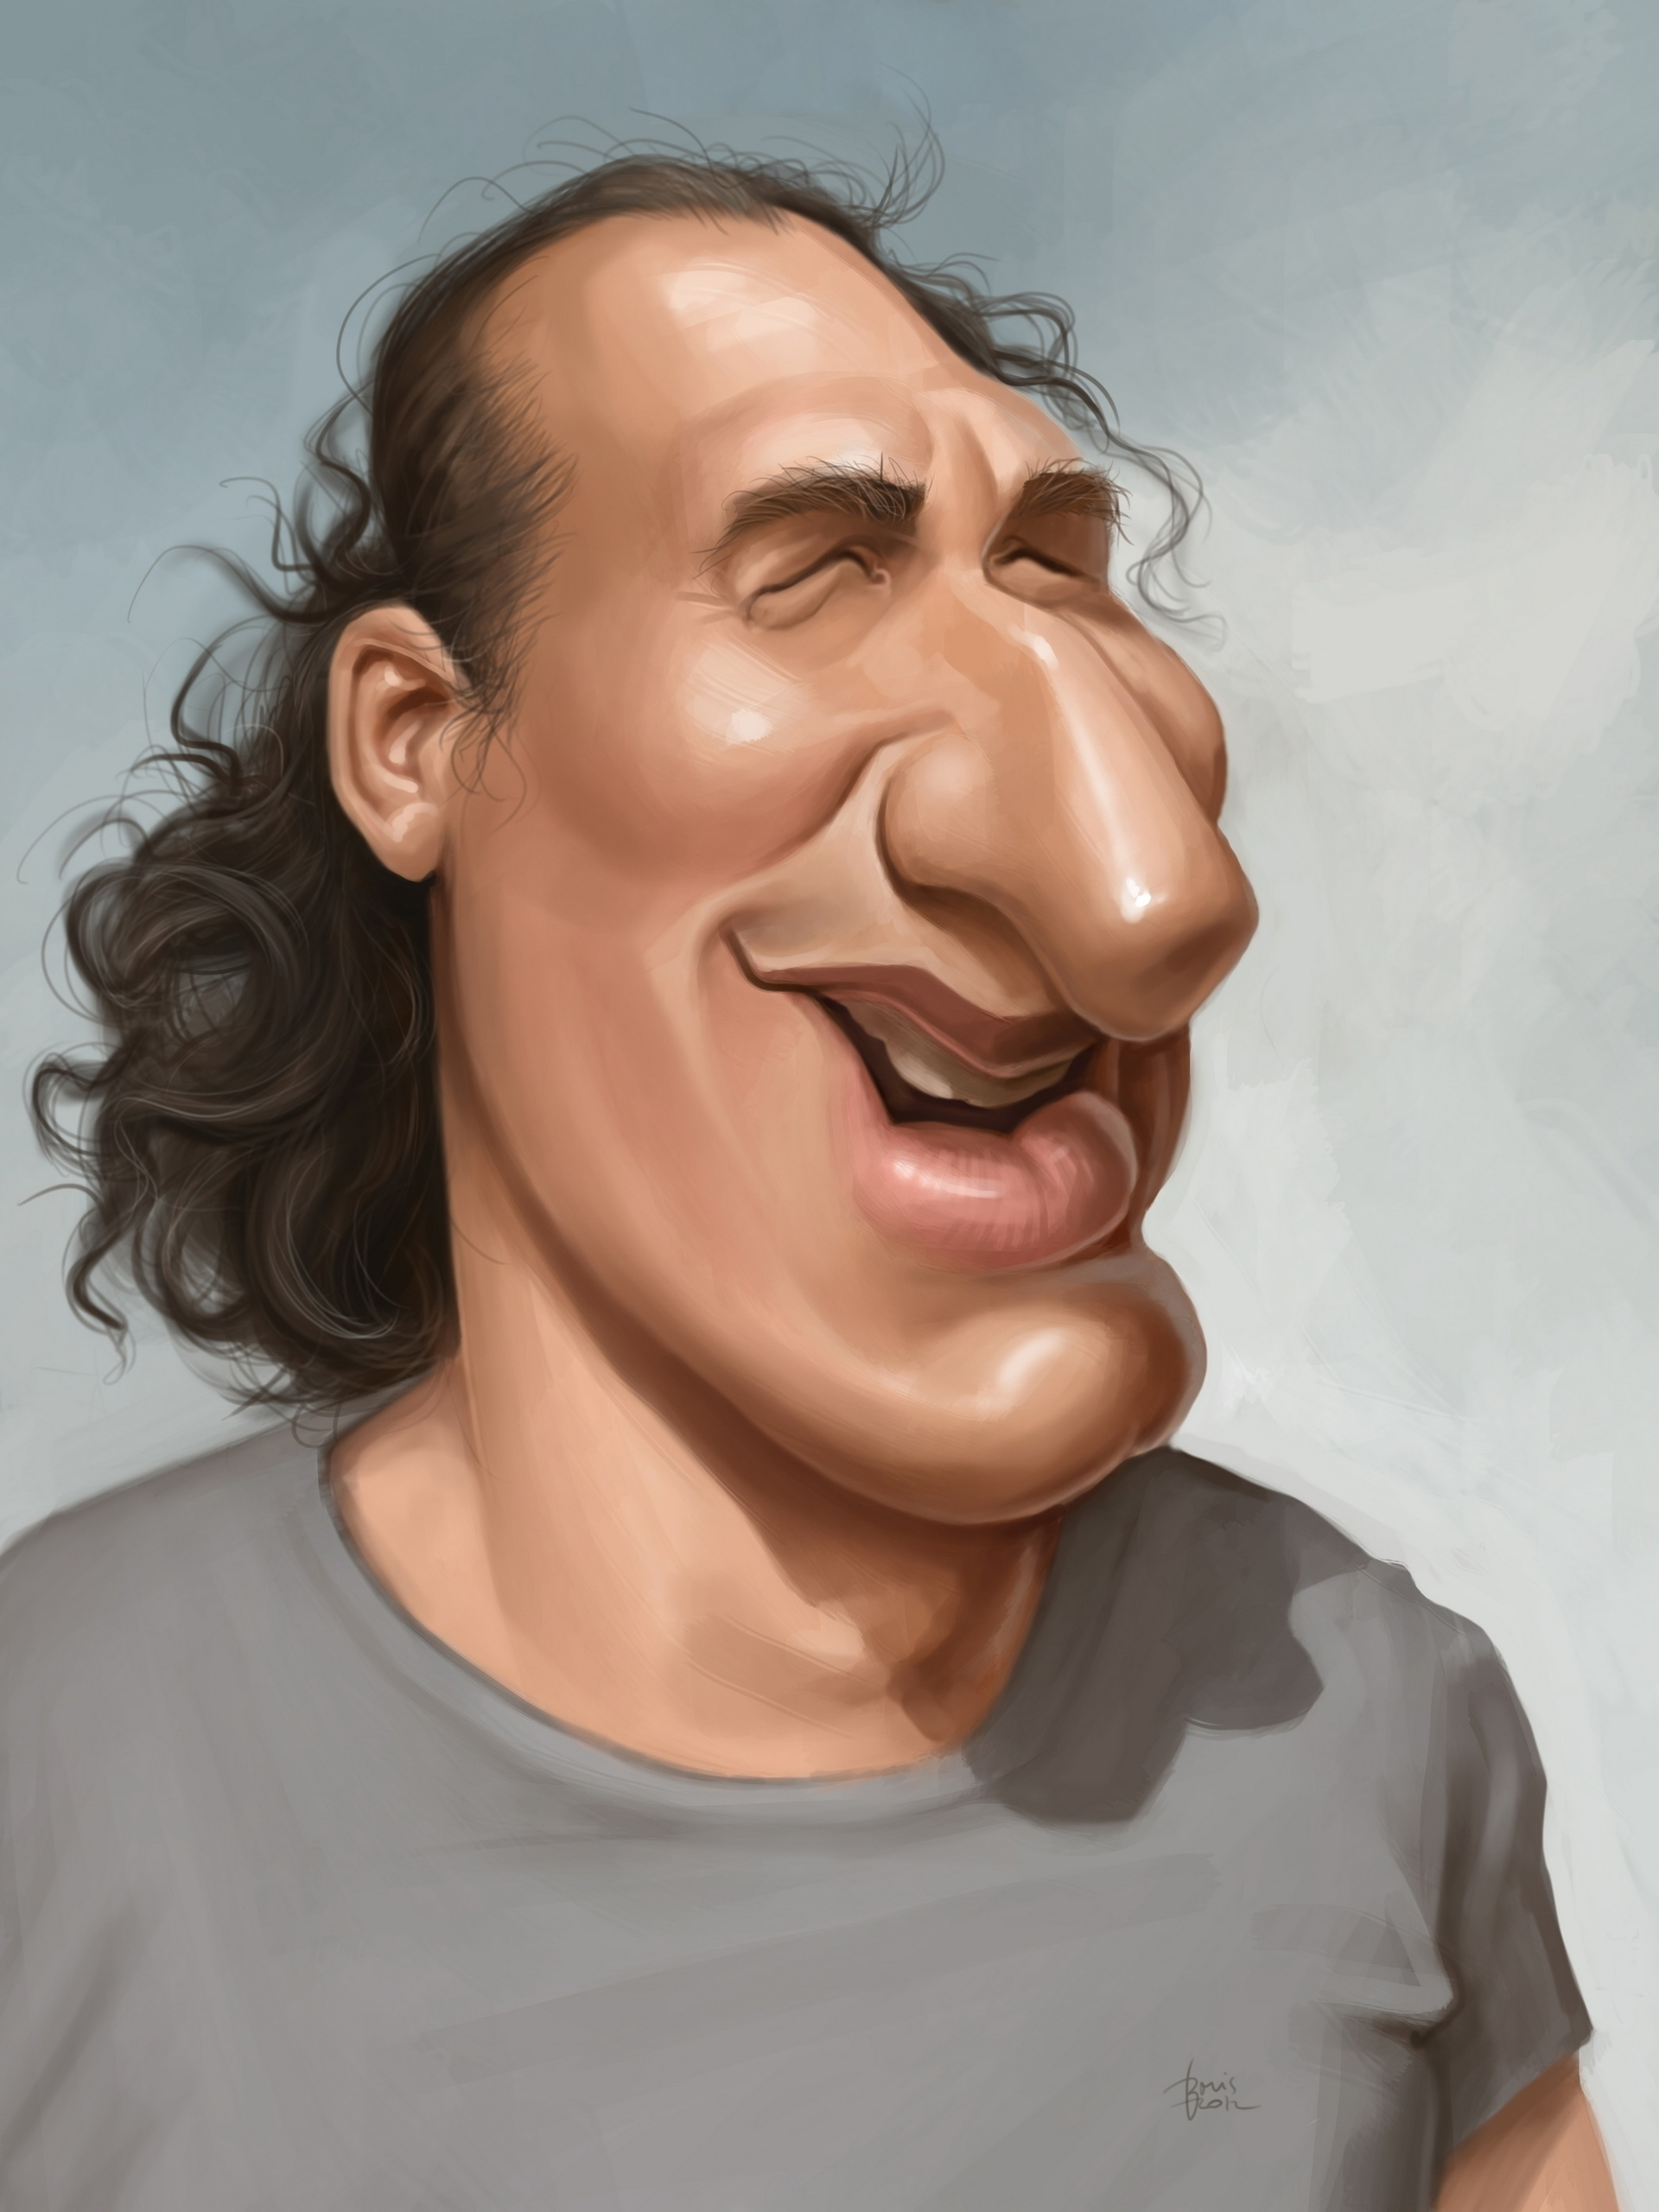 Vid Valic, slovenian actor - caricature - karikatureboris | ello